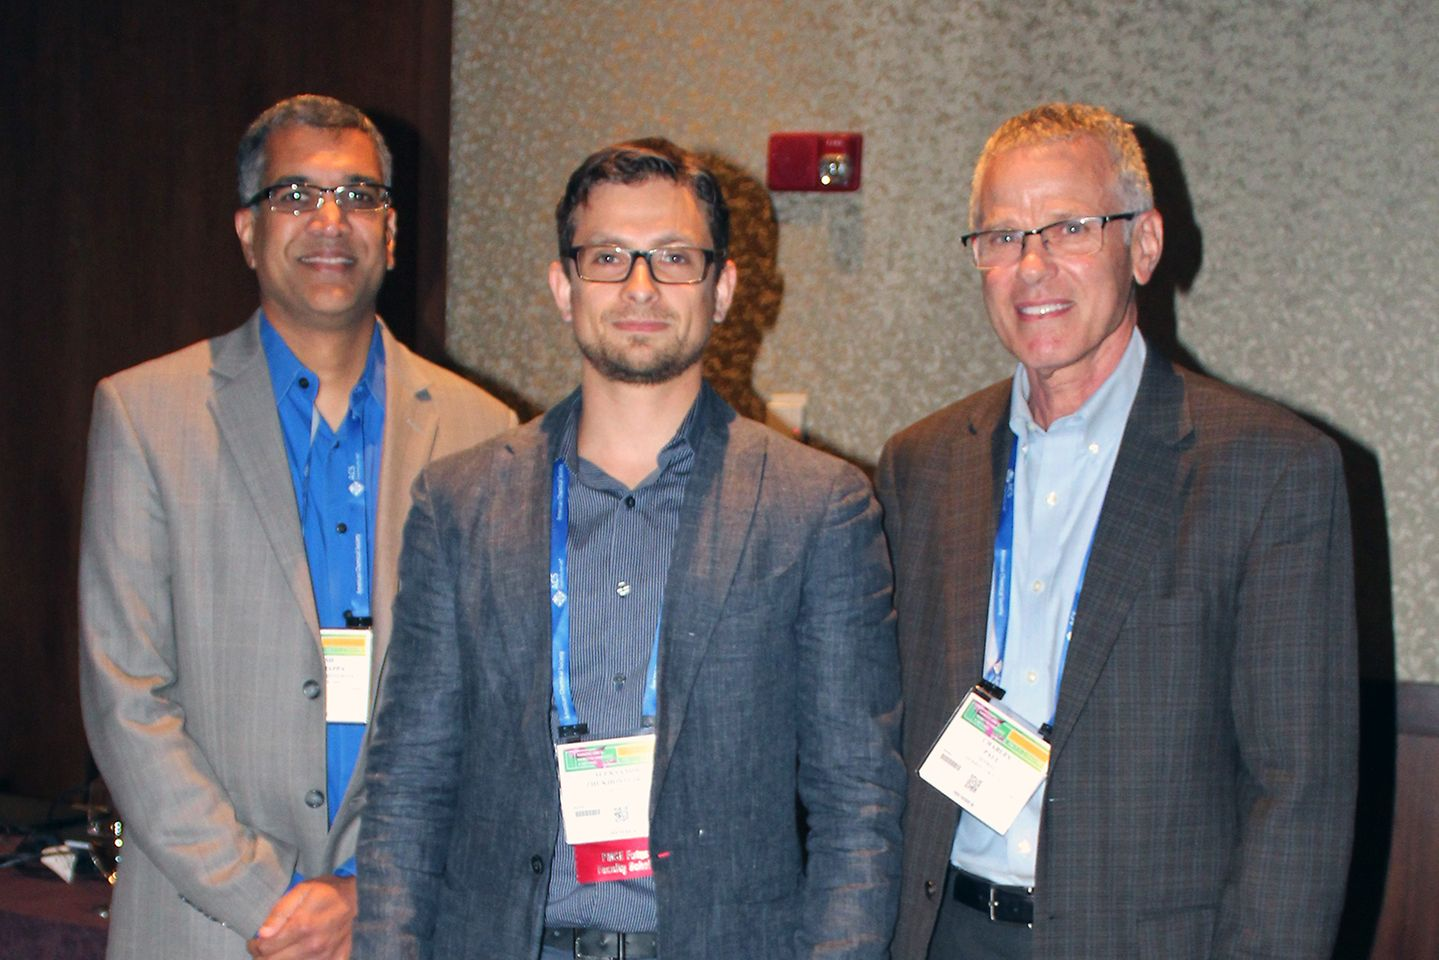 At the symposium the American Chemical Society, Coordinator of the award (left) Prof. Mahesh Mahanthappa from the University of Minnesota and Dr. Charles Paul (right), Vice President of Technology, Adhesive Technologies, join to recognize the award recipient Aleksandr V. Zhukhovitskiy from the Massachusetts Institute of Technology.